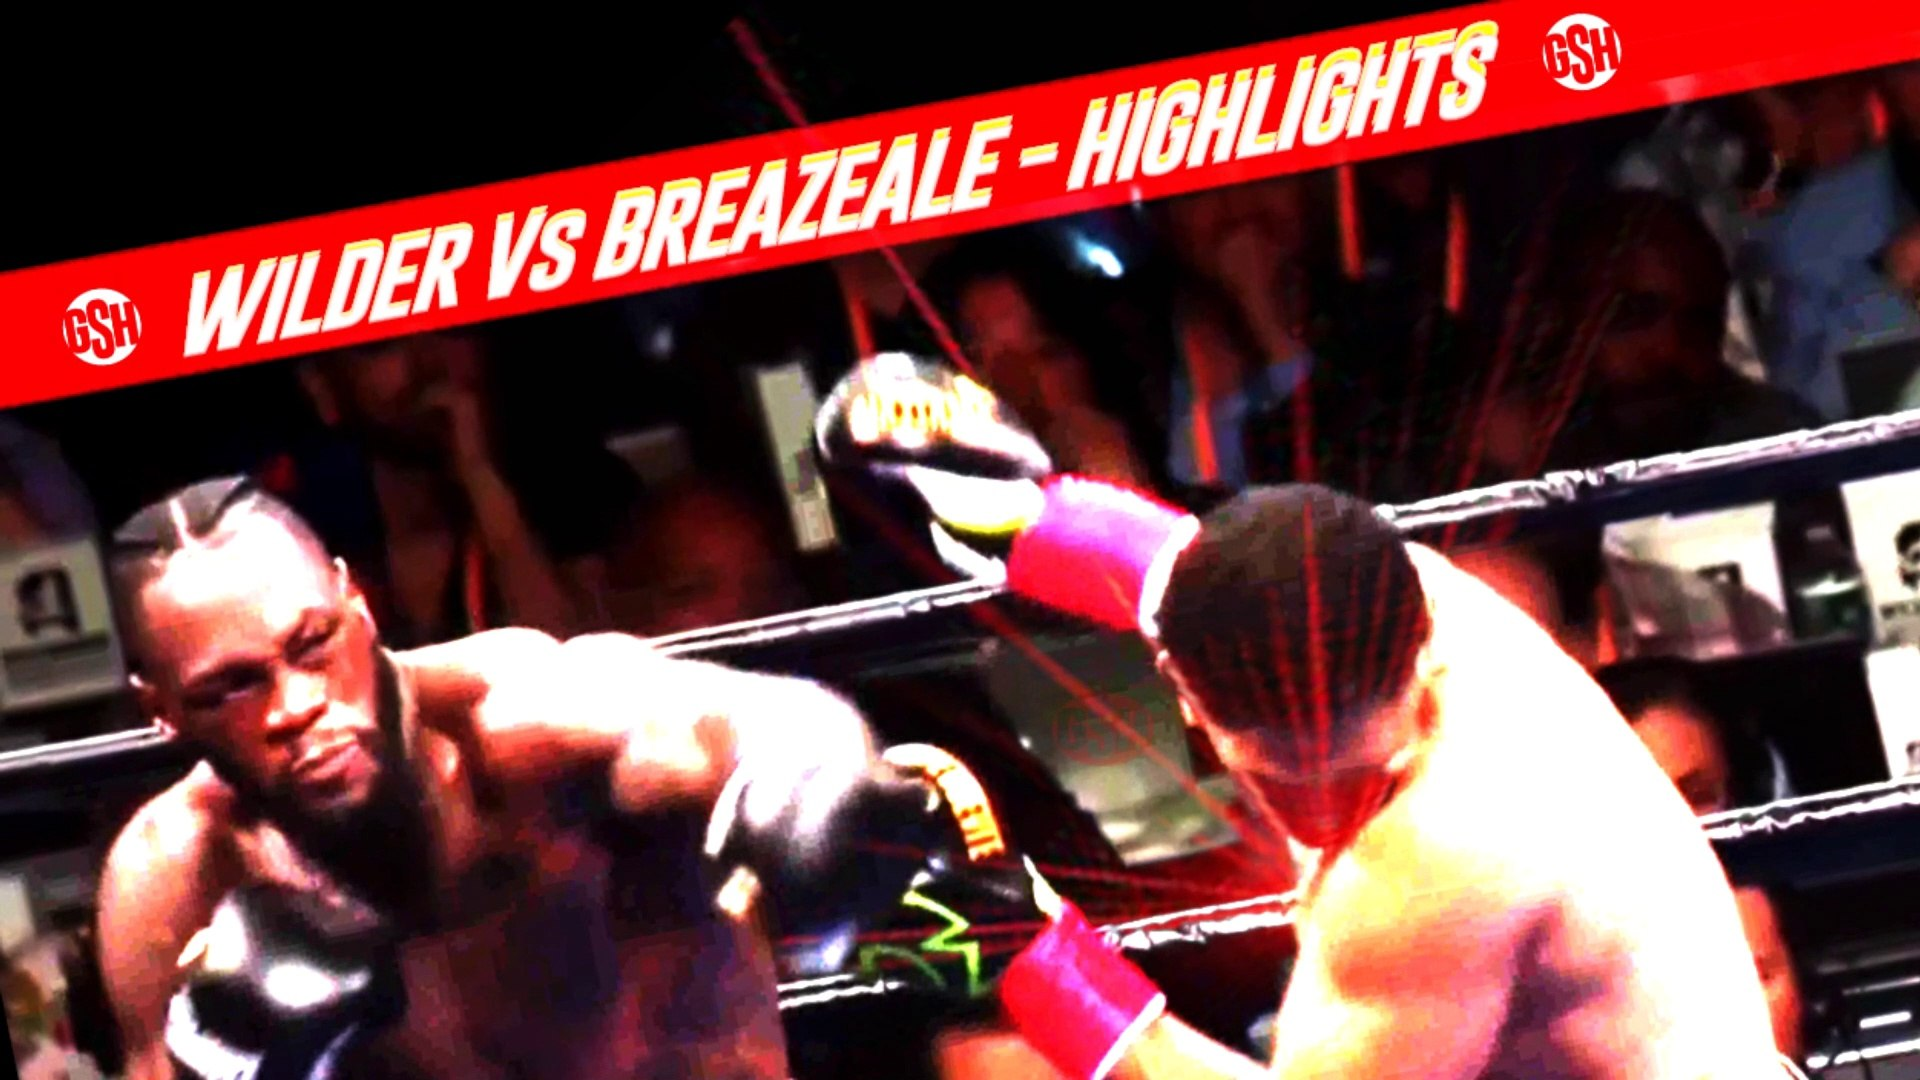 Wilder 1st Round KO Highlights -  Drontay Wilder Vs Dominic Breazeale Full Highlights